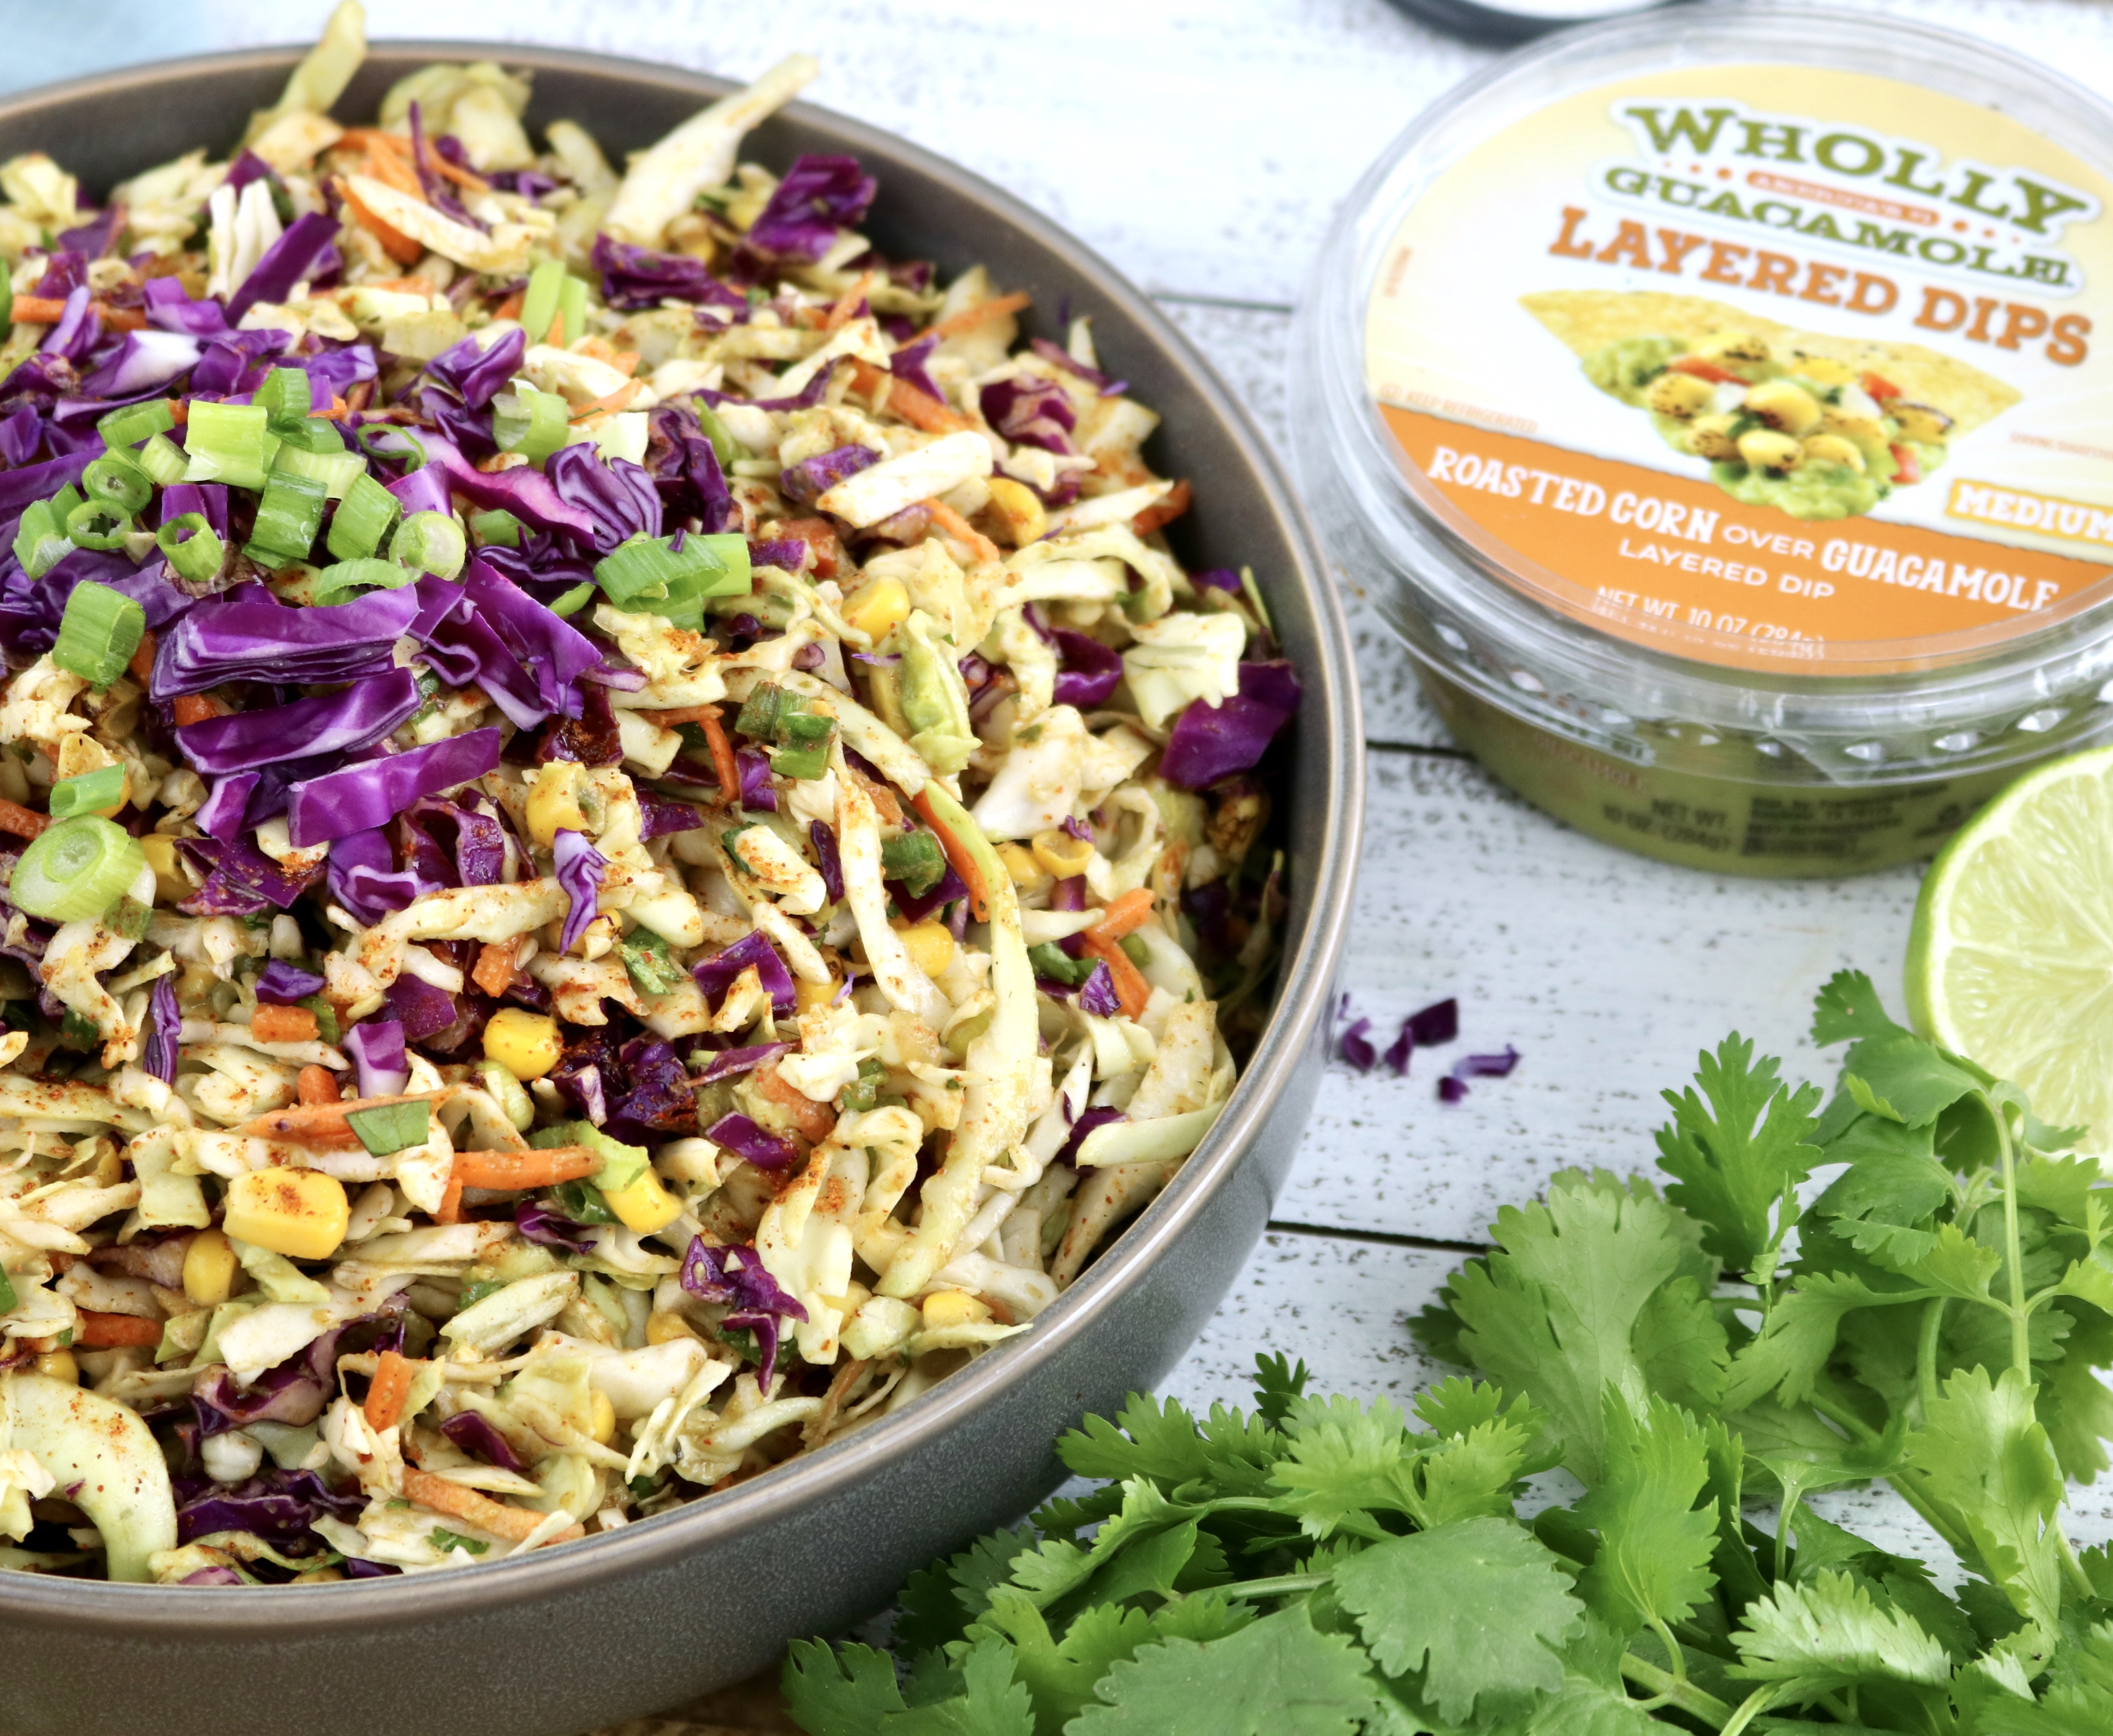 The perfect addition to any picnic is as easy as mixing coleslaw mix with Wholly Guacamole Dip made with real avocados.